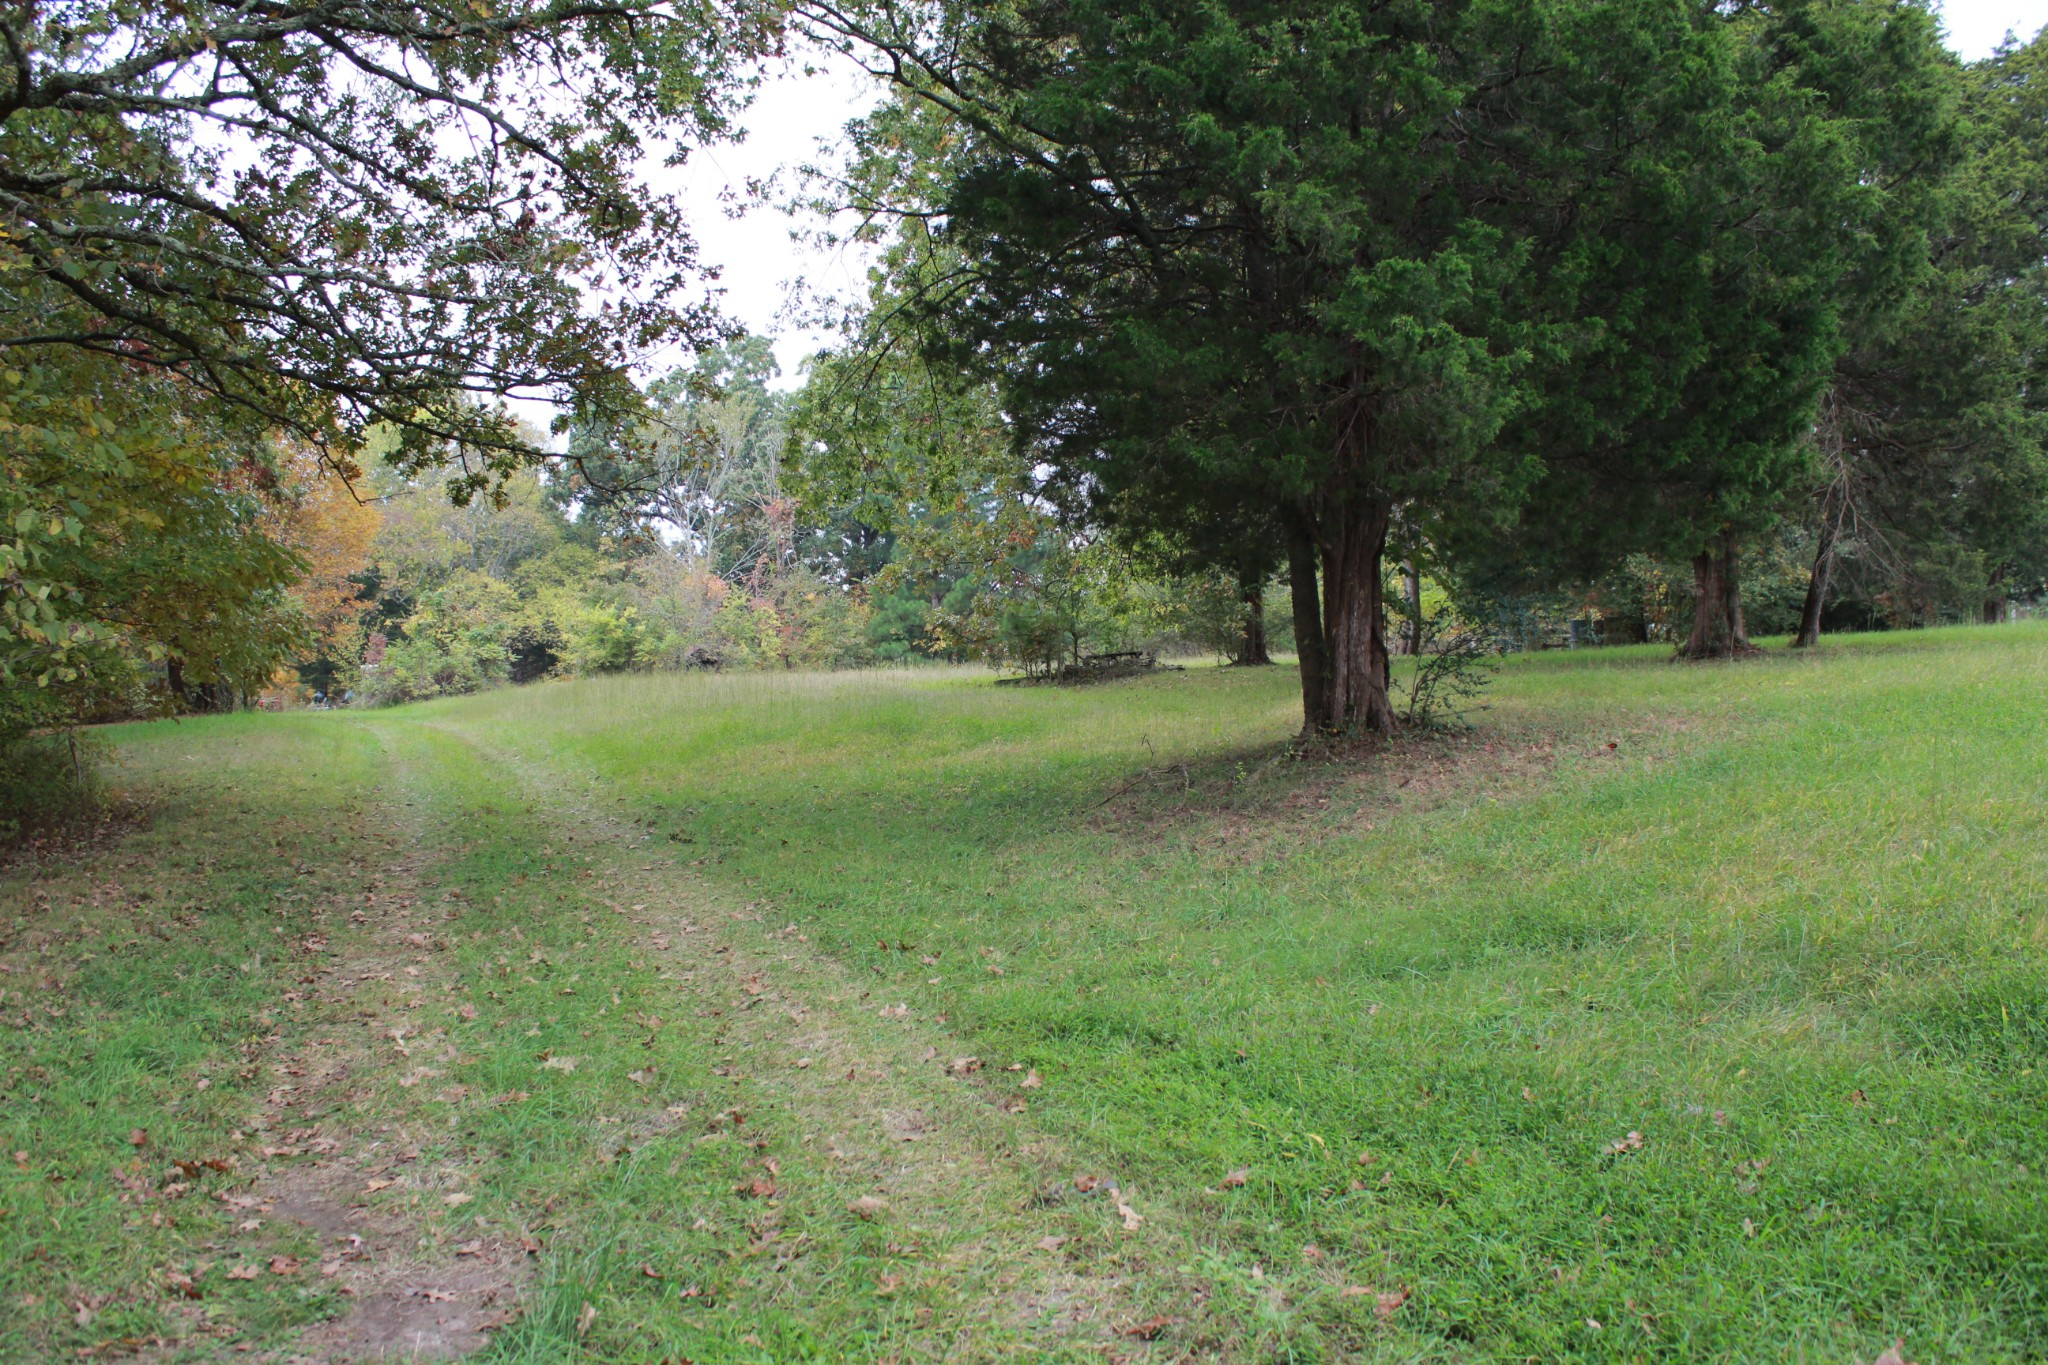 Beautiful 1.6 acre building site, 437 Foot of road frontage, electric & water at the road, 2 septic tanks on property. Do not enter the old farm house it has been vacant for 20 years, there is also an old well on the property that is also roped off, use caution when walking property.